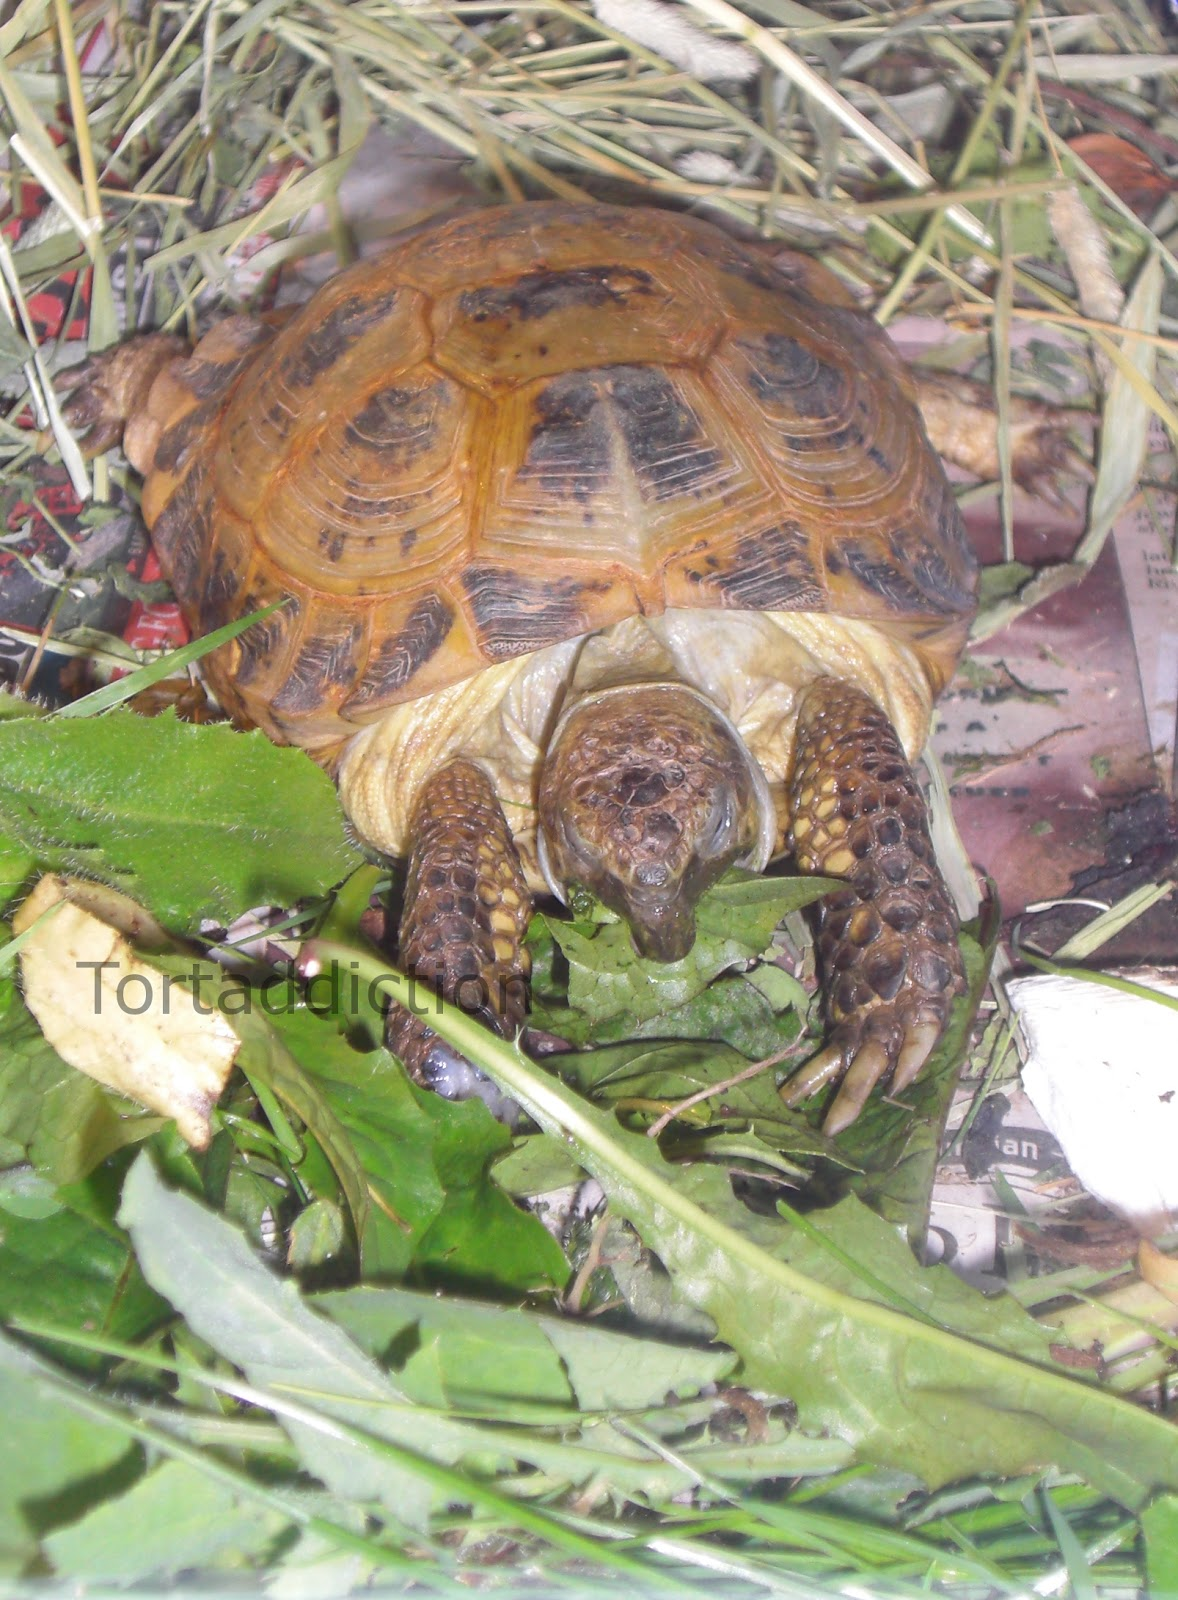 Tortaddiction november 2012 his shell is still painted with betadine nvjuhfo Gallery